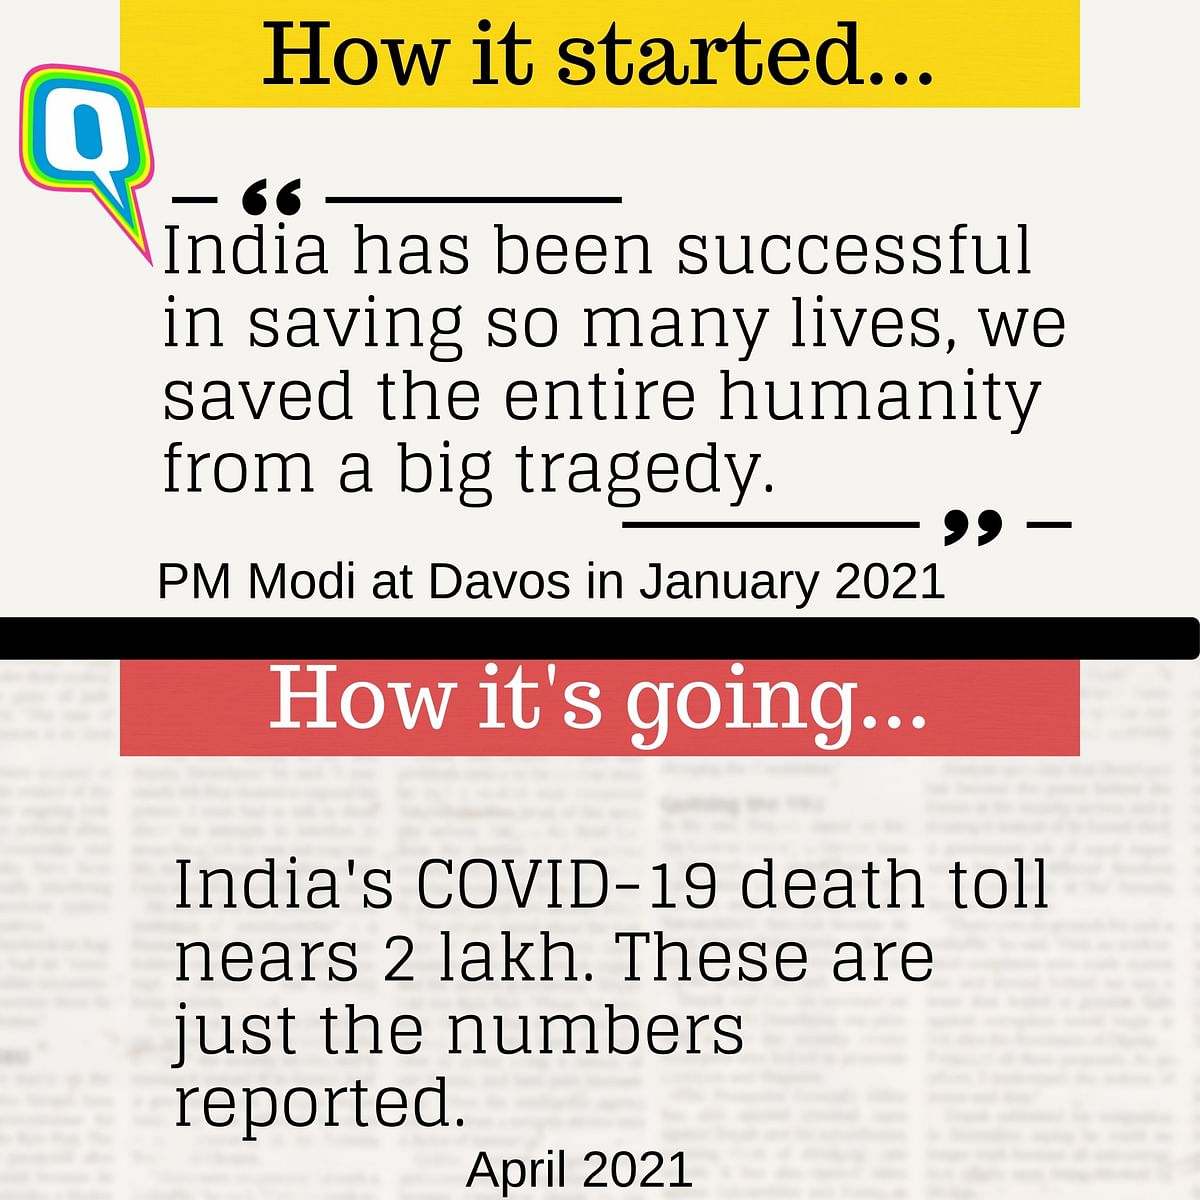 On 26 April, India recorded the highest-ever spike with 3.52 lakh new cases and 2,812 deaths.